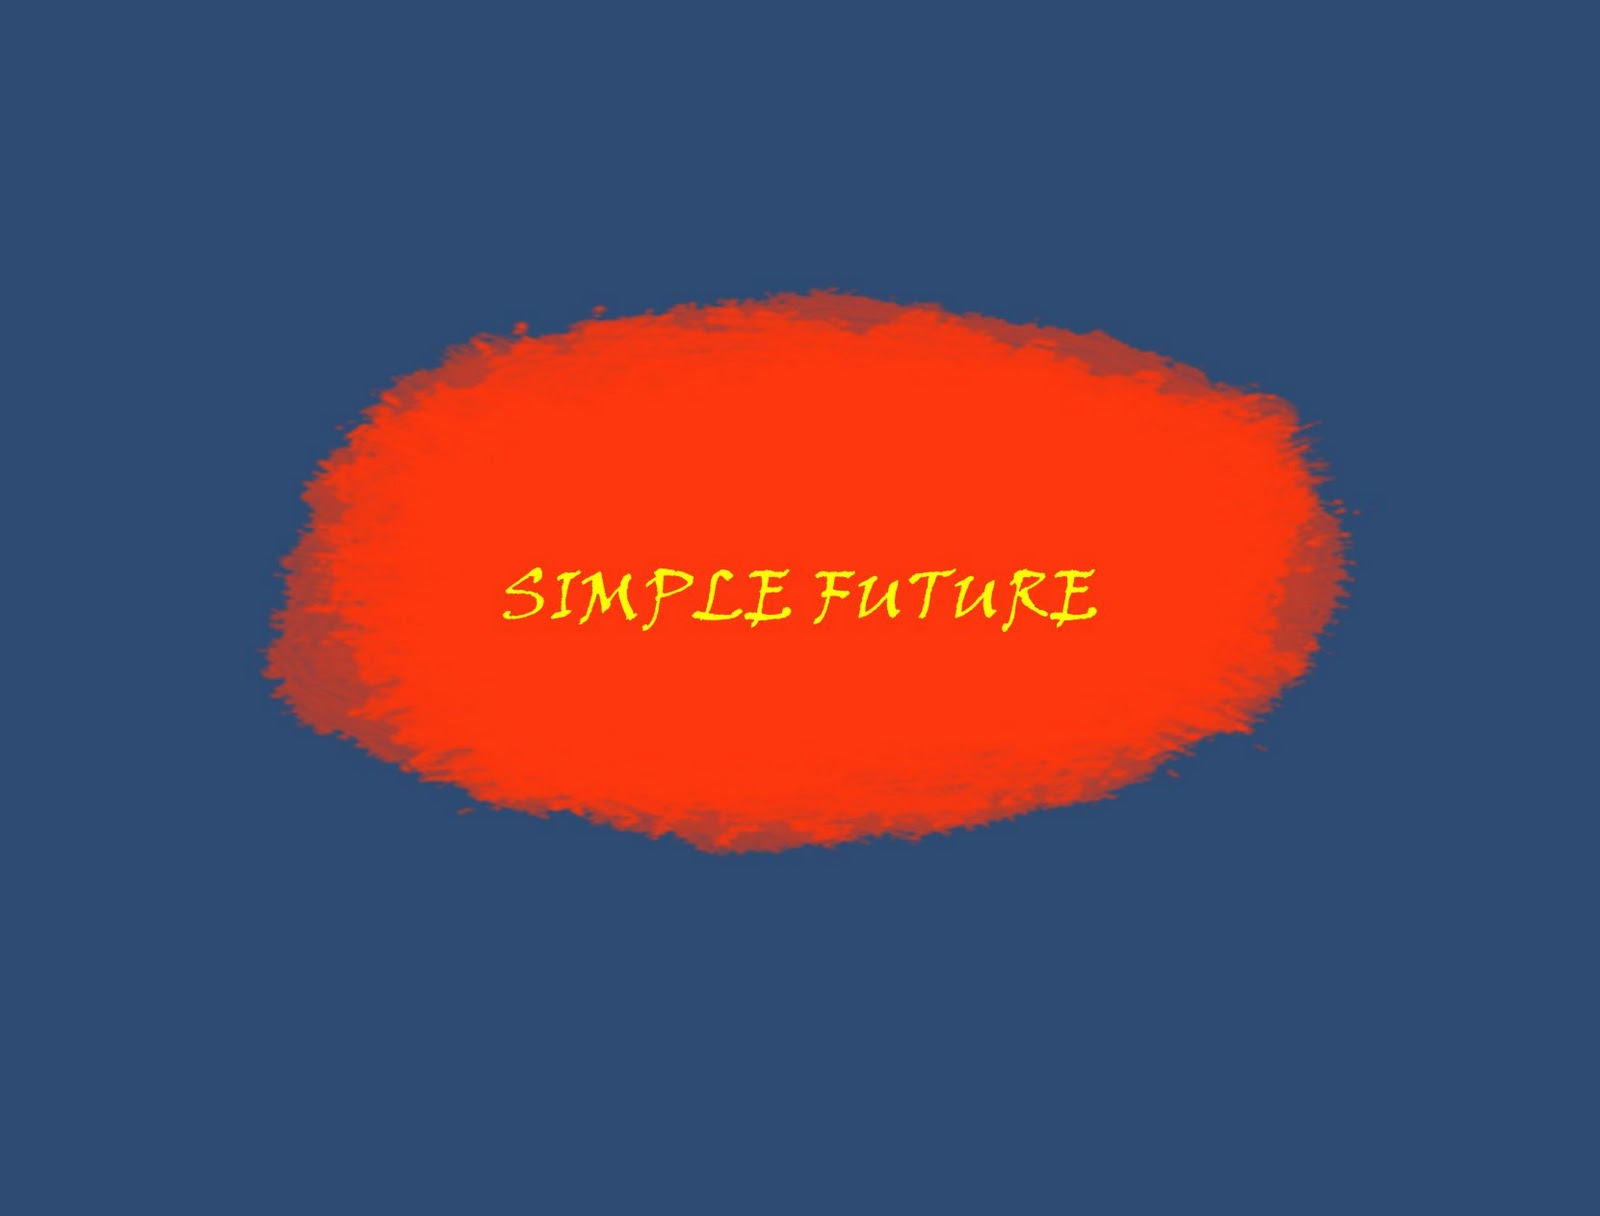 Simple Future tense is used to describing job or action that will to